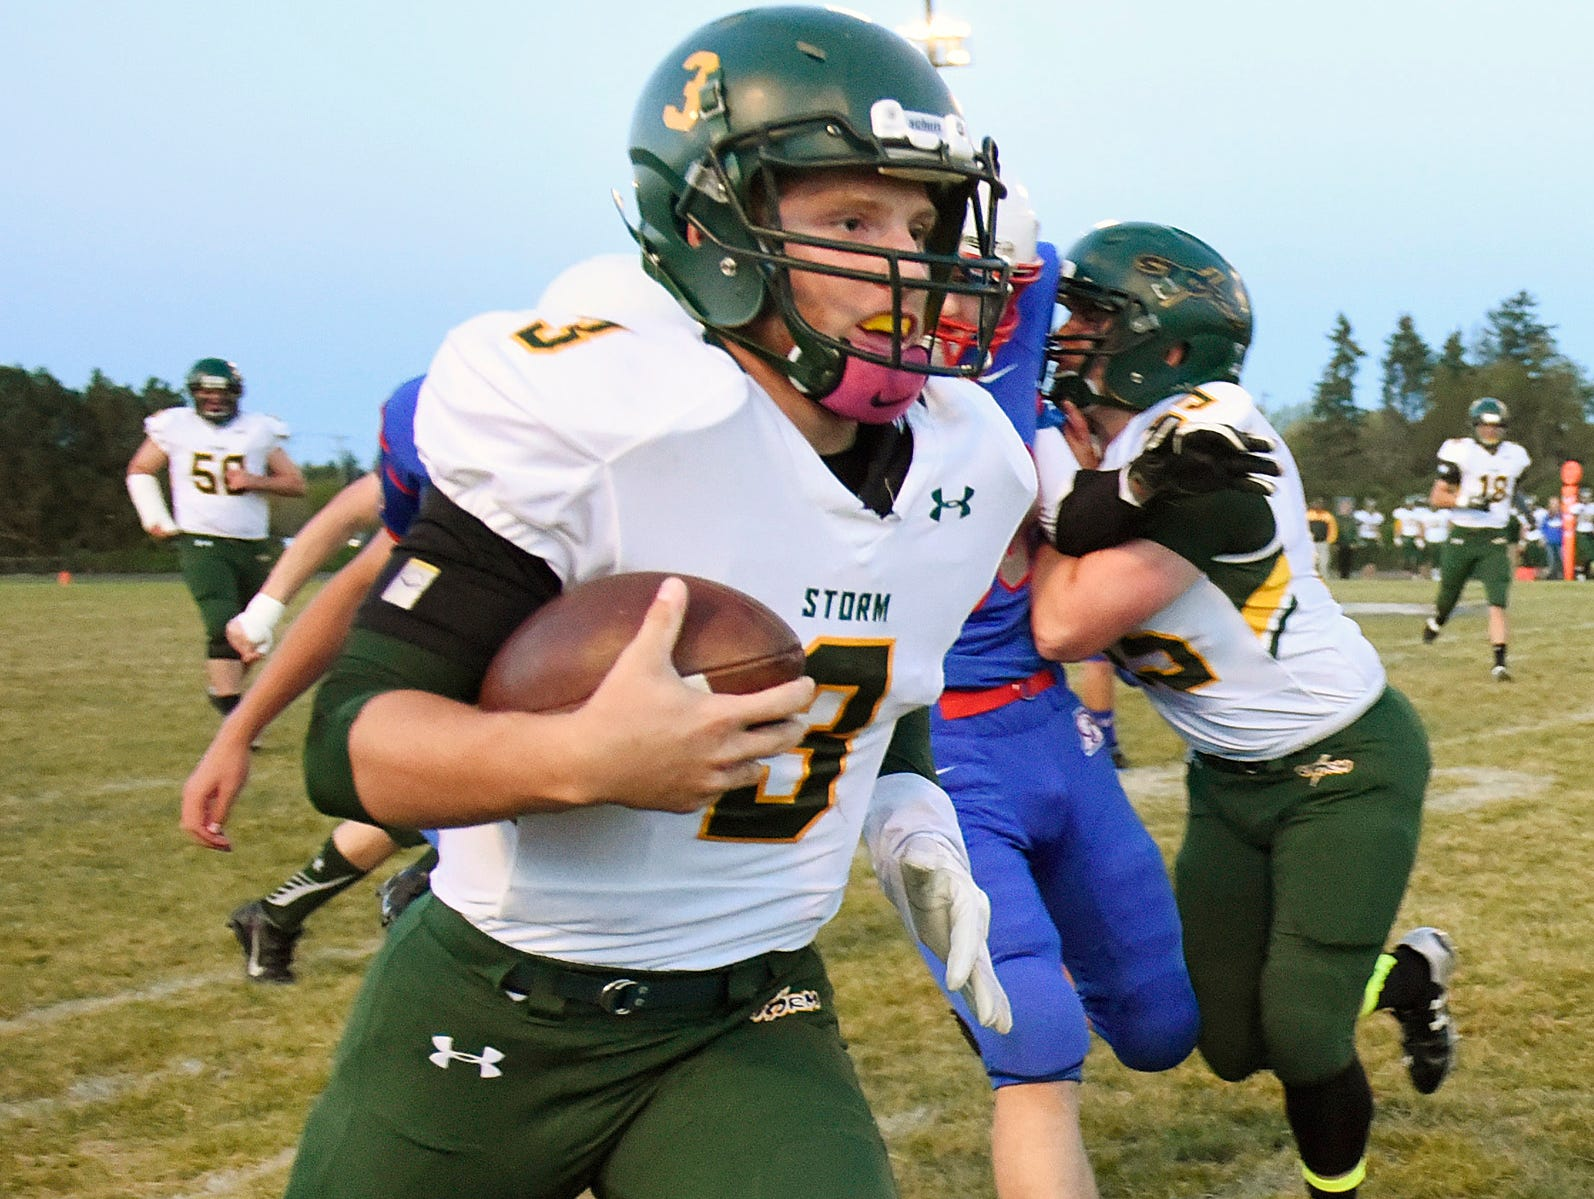 Sauk Rapids' Matt Johnson runs with the ball against St. Cloud Apollo on Oct. 2. Johnson is a senior quarterback/defensive back.